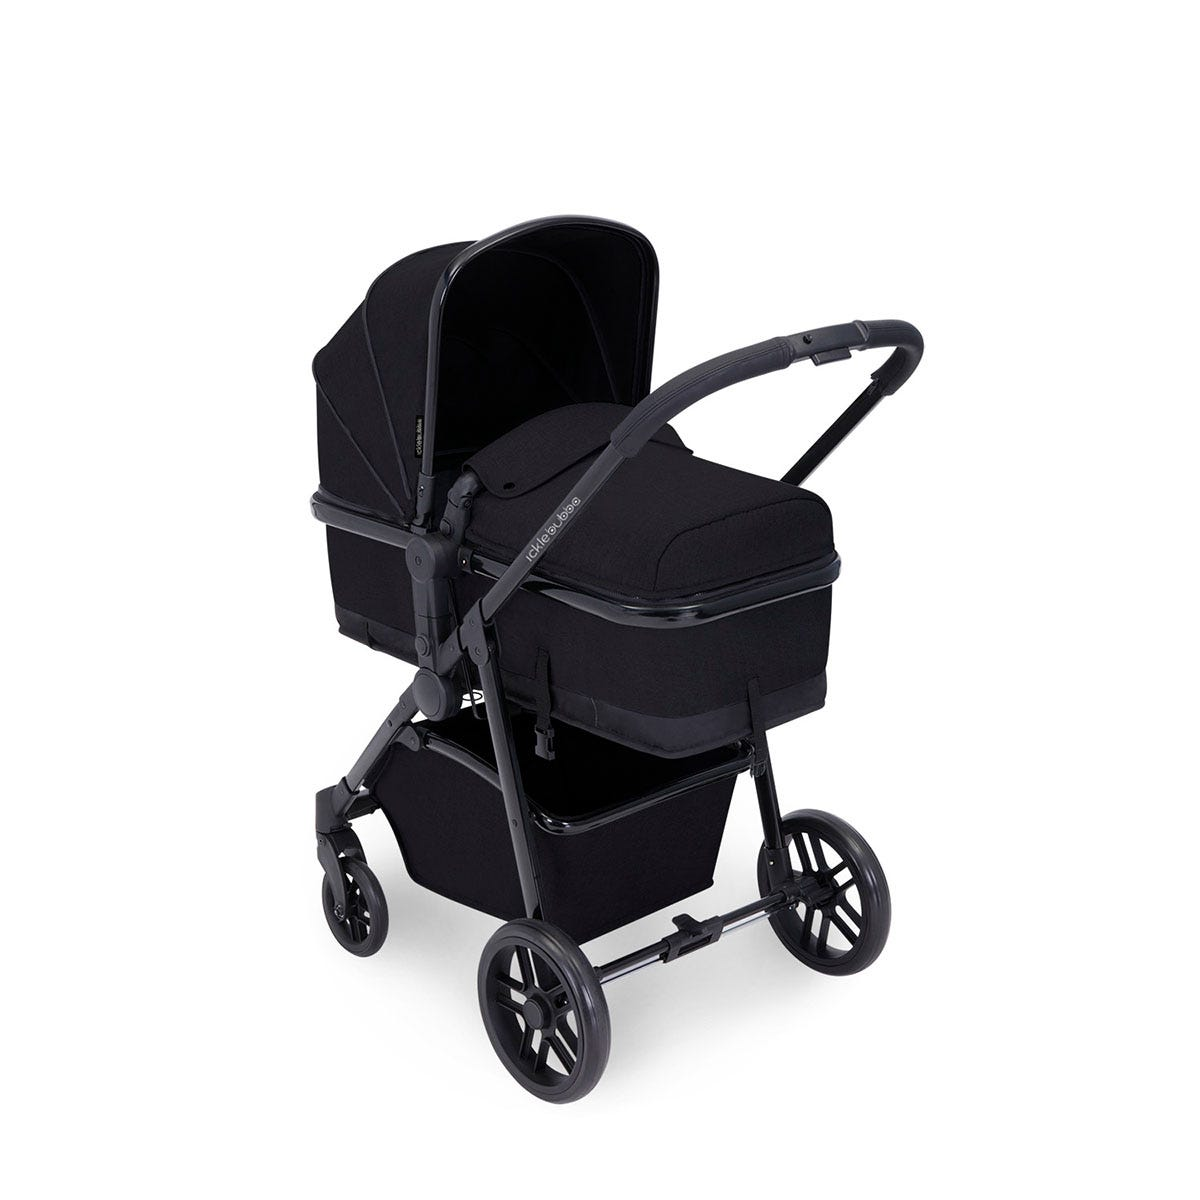 Ickle Bubba Moon i-Size 3 in 1 Travel System - Black on Black with Black Handles